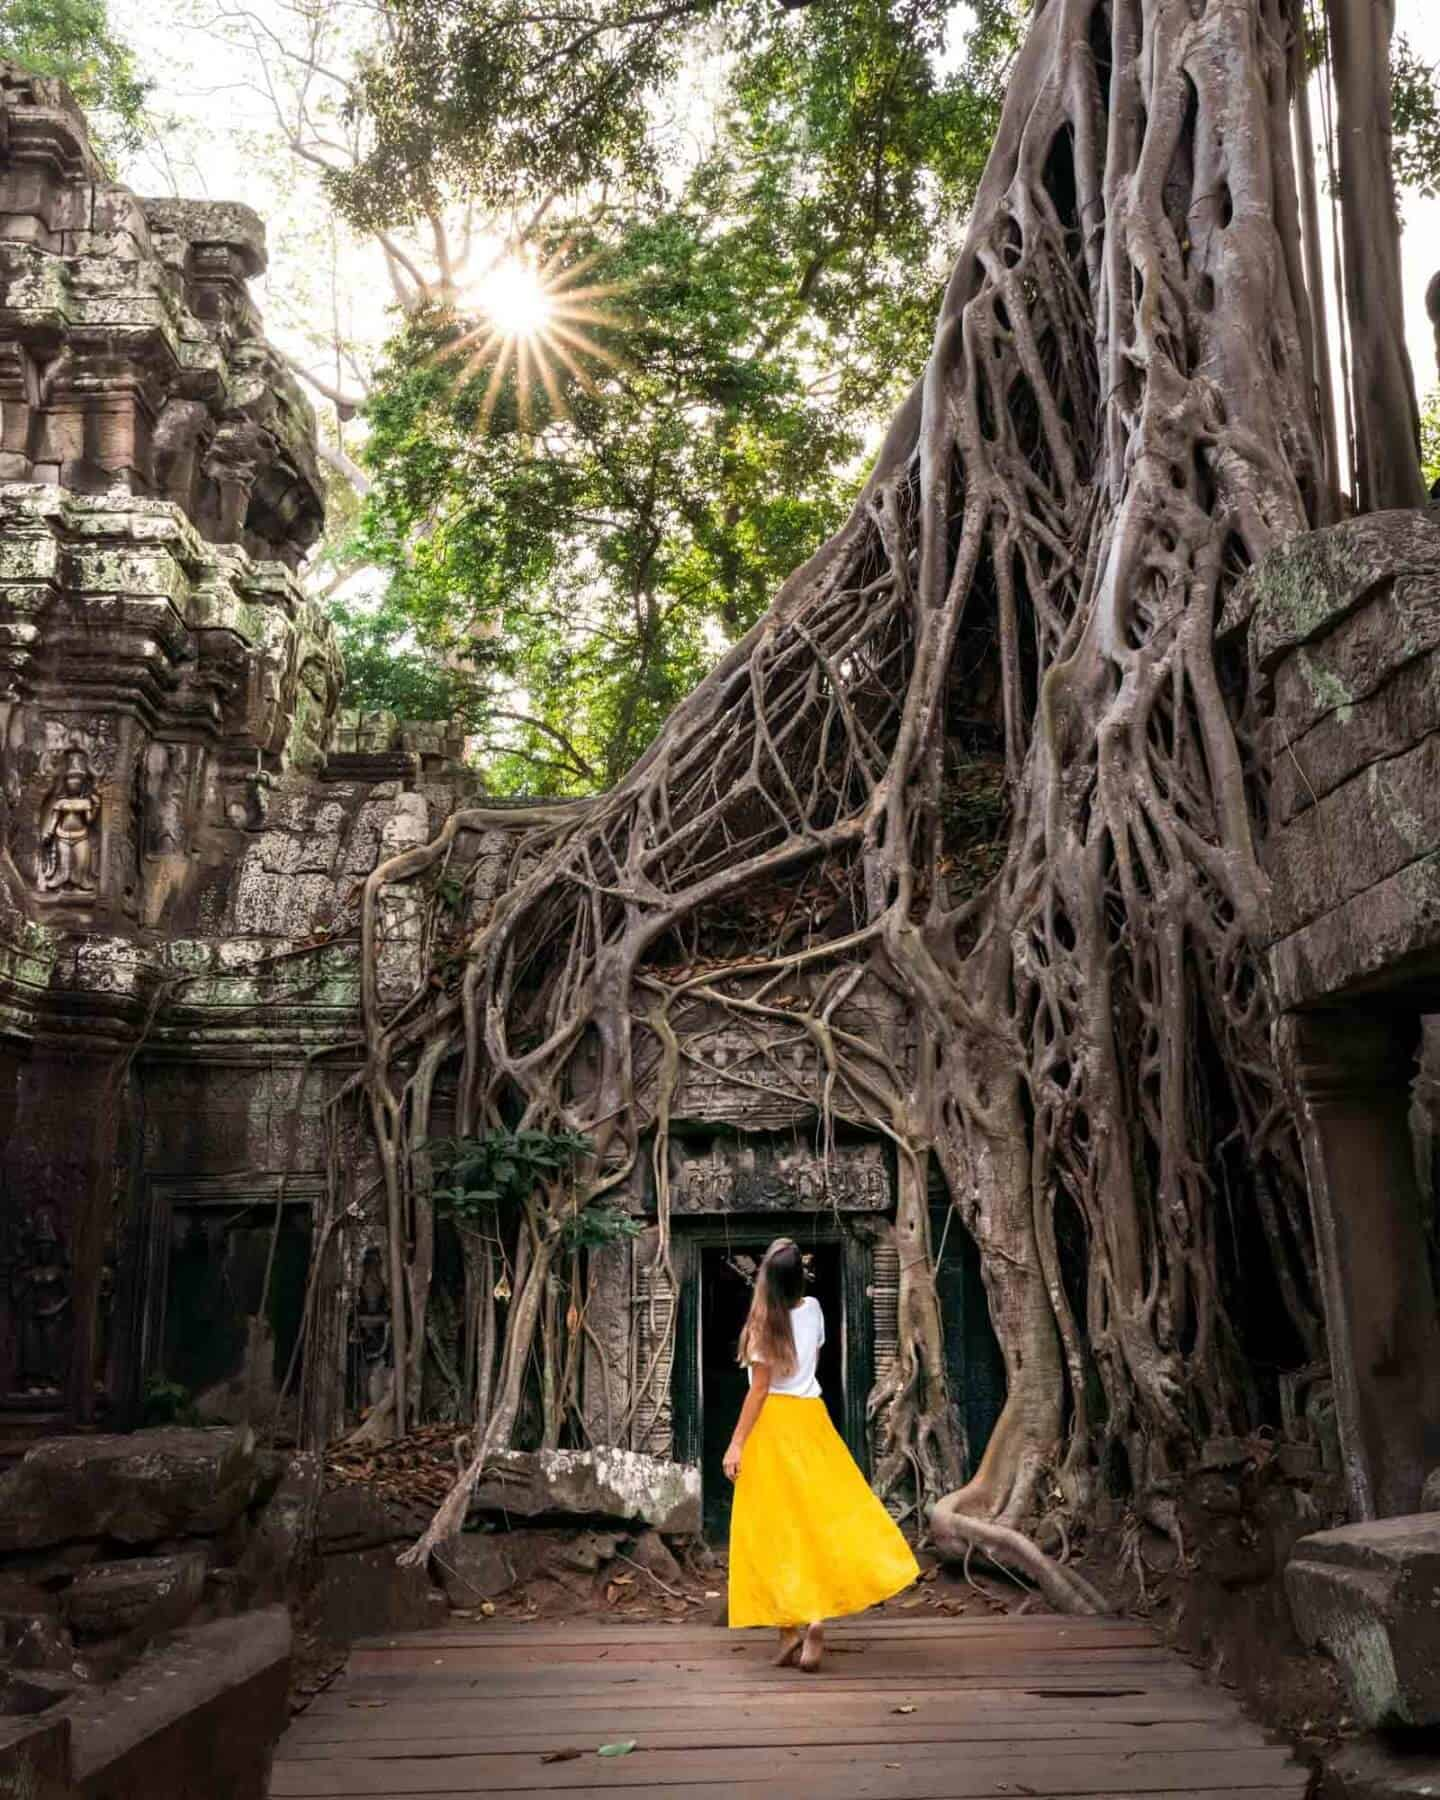 A photo from Ta Prohm temple showing @travelsofsophie in a yellow dress